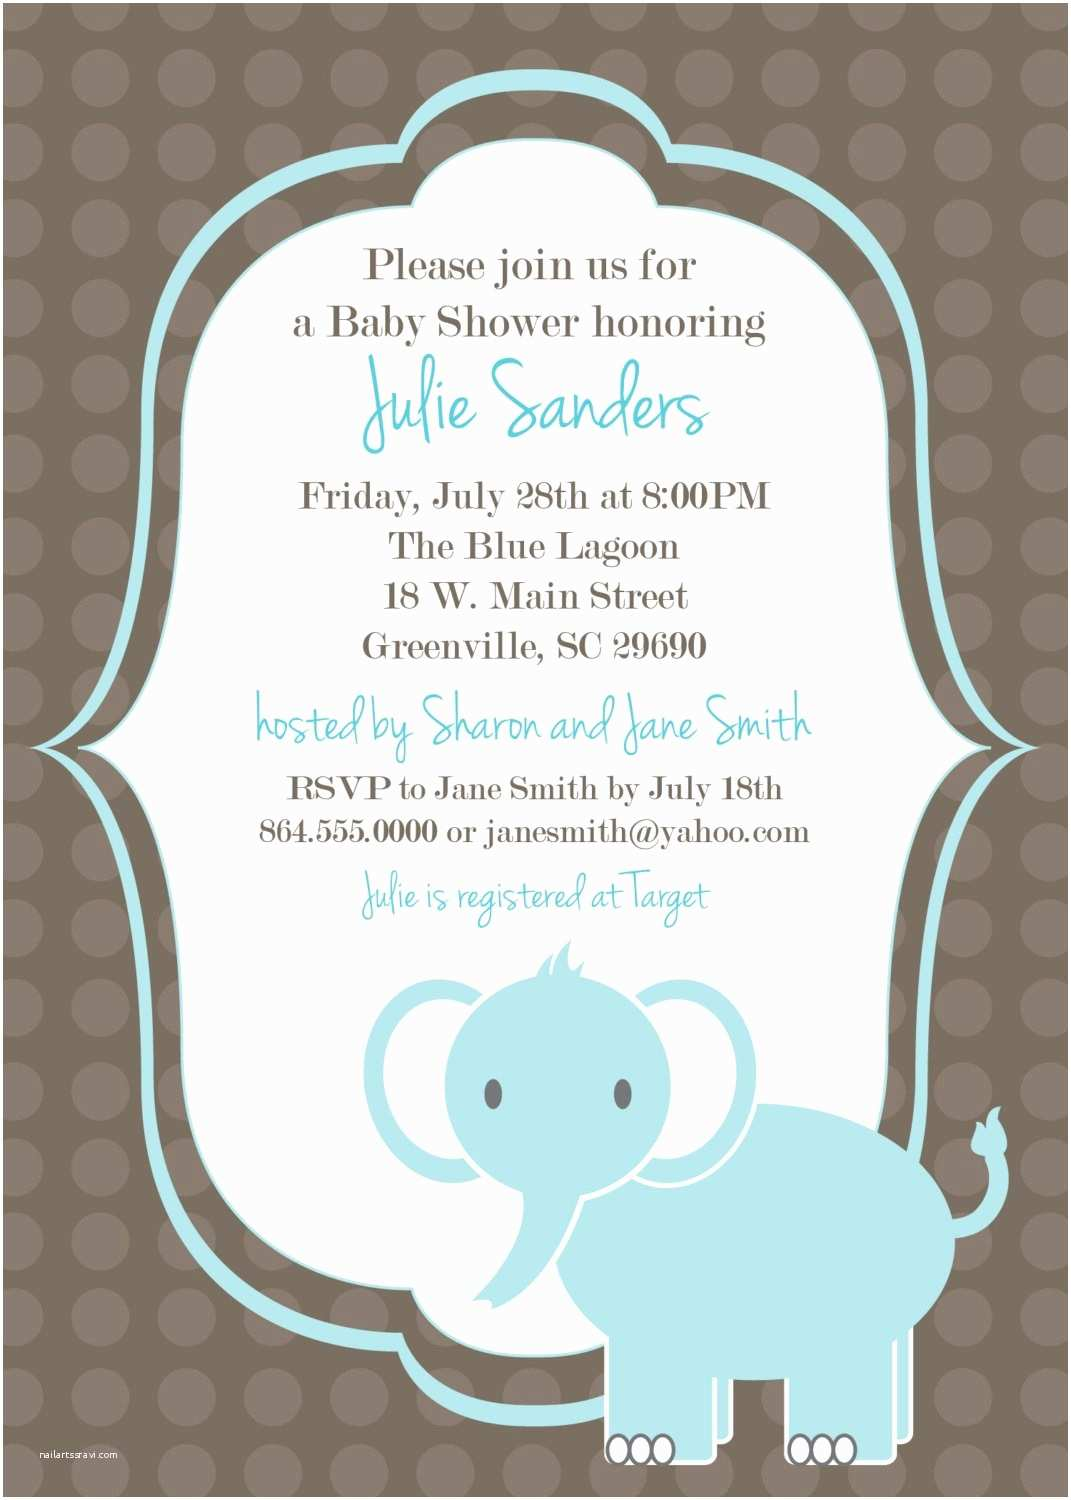 Baby Shower Invitation Examples Free Baby Shower Invitation Templates Microsoft Word